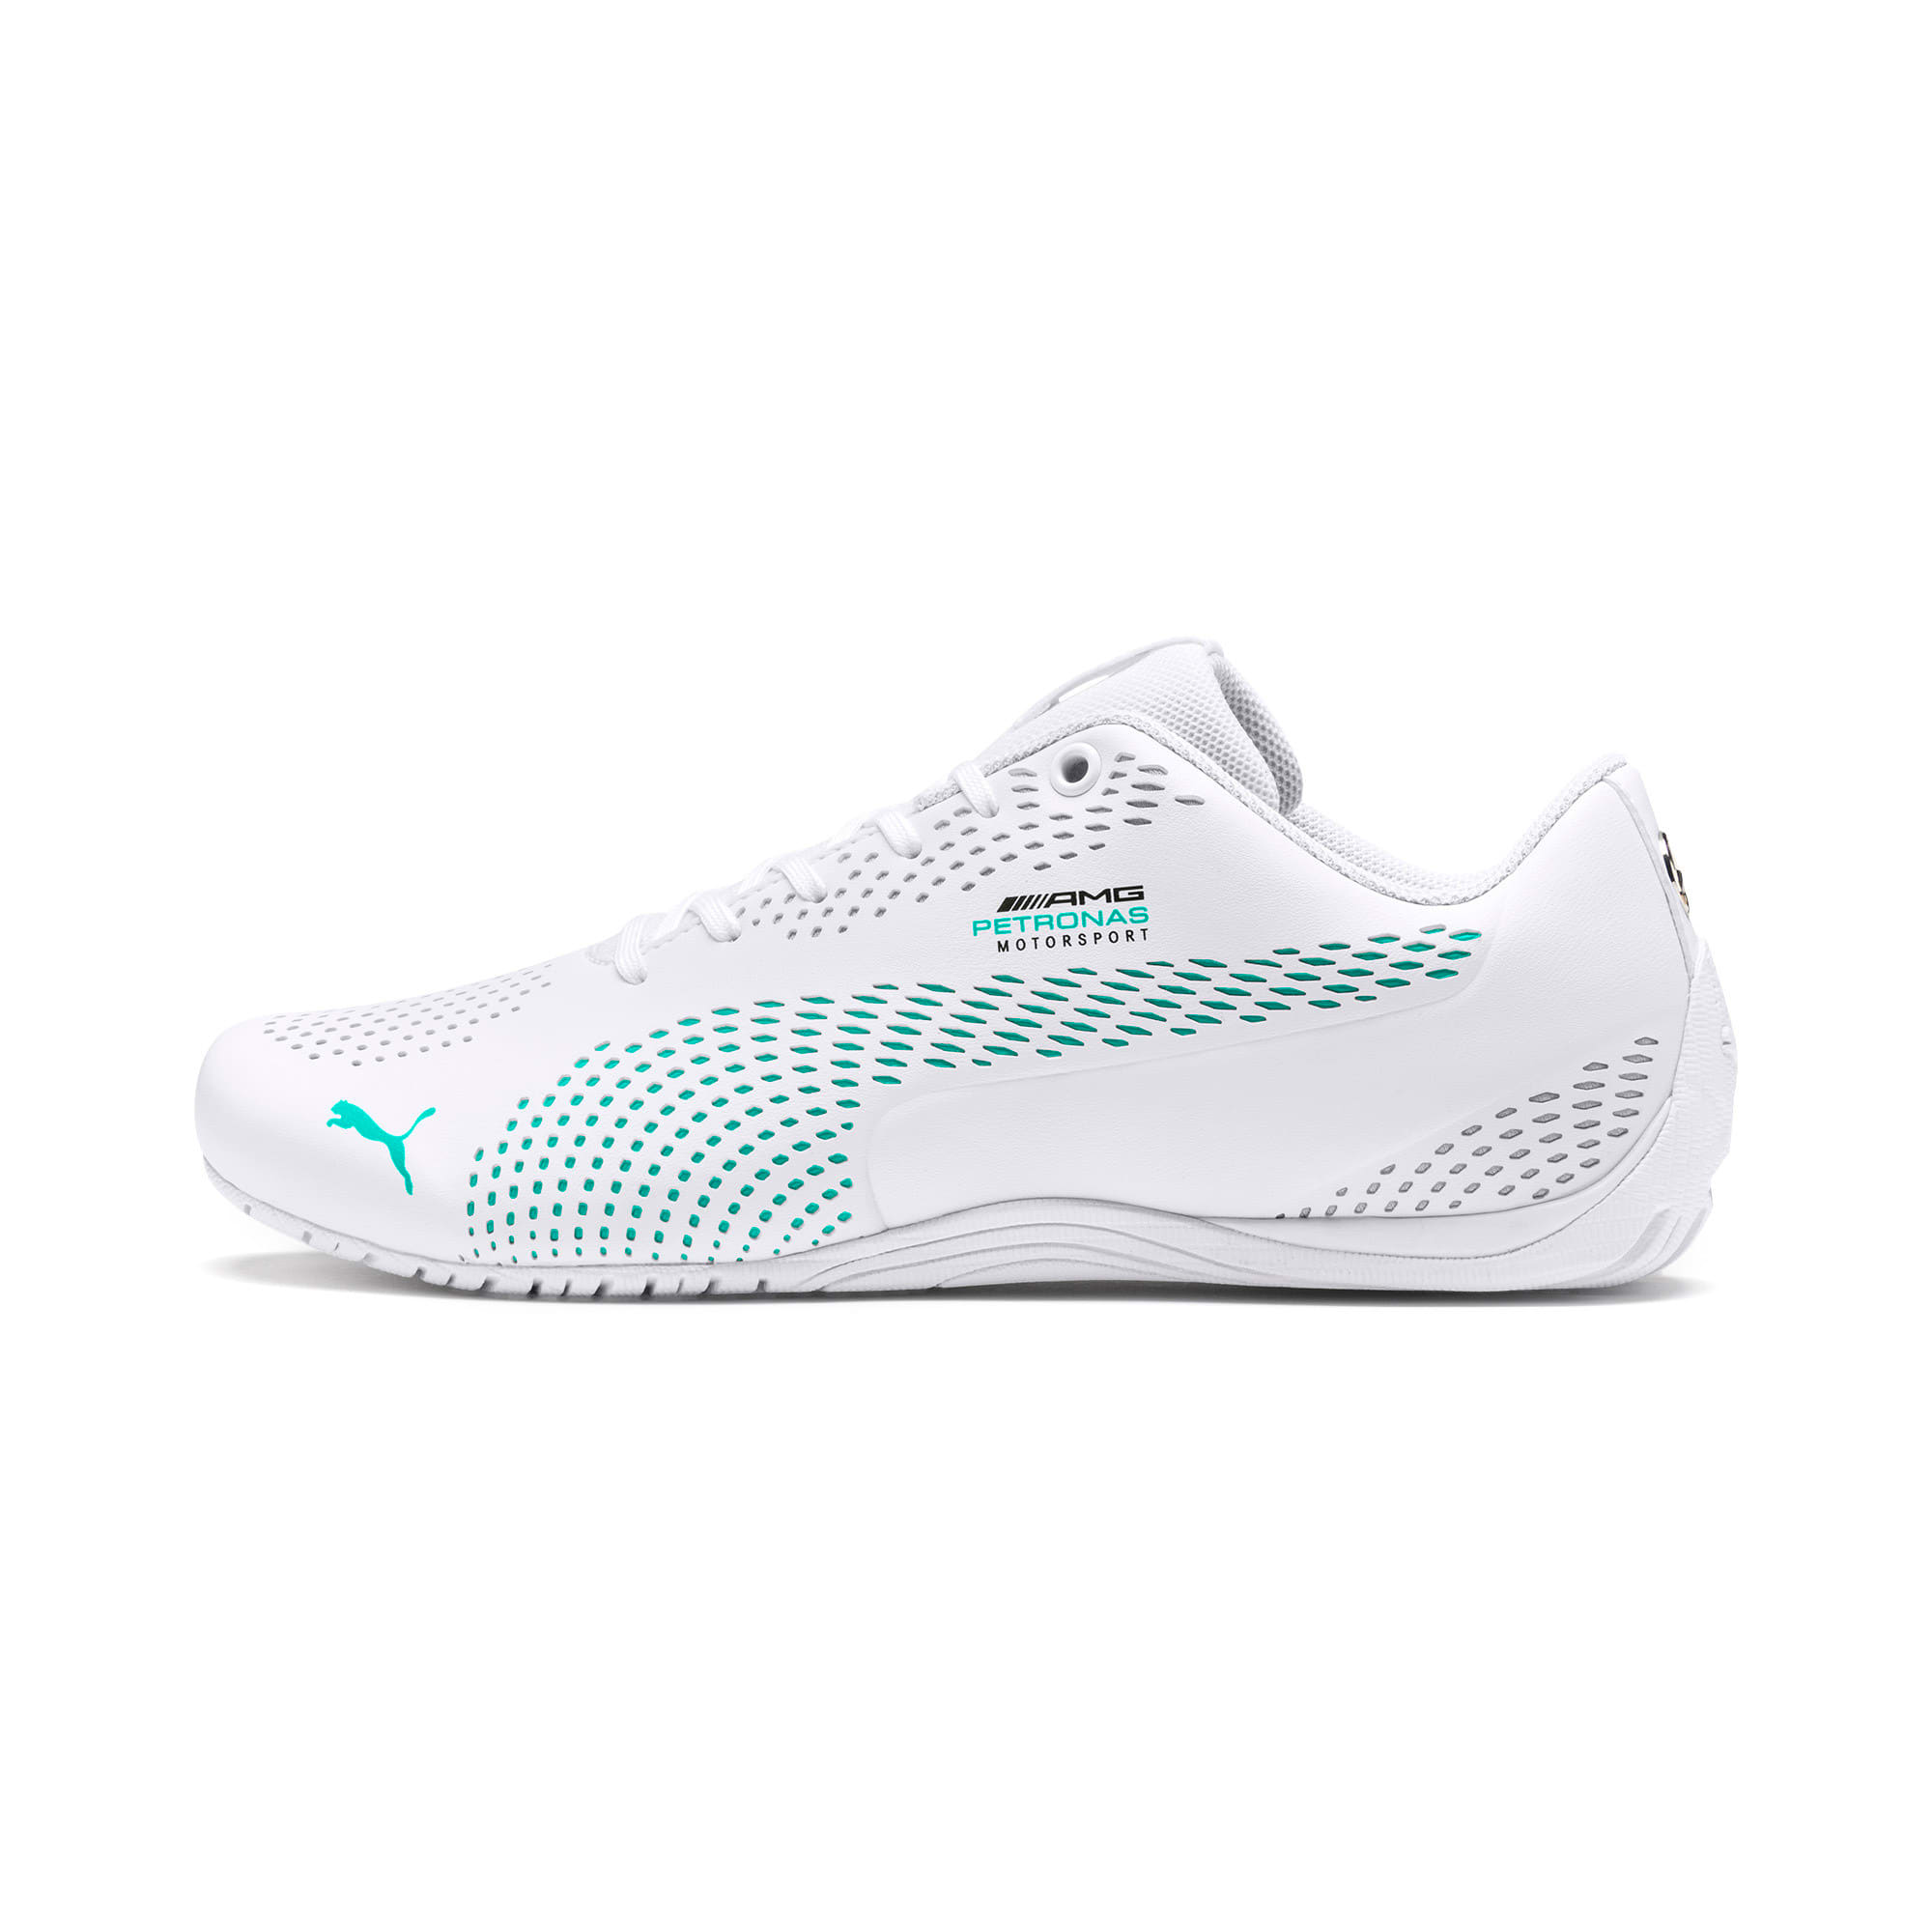 PUMA Mercedes AMG Grand Cat Shoes | Estilo masculino, Moda